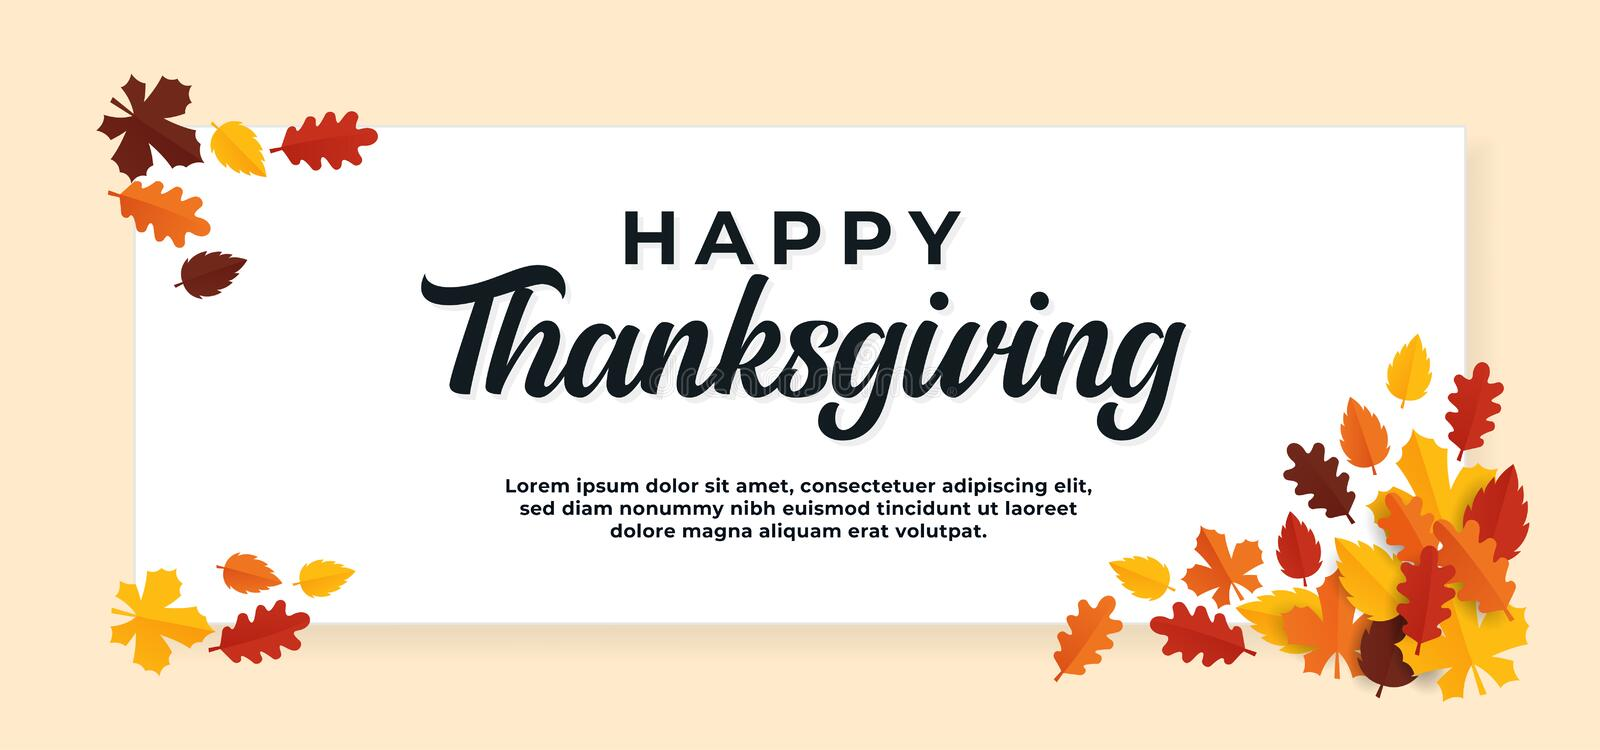 Happy thanksgiving day text background with fall dry leaves ornament vector illustration banner template. Eps 10 royalty free illustration